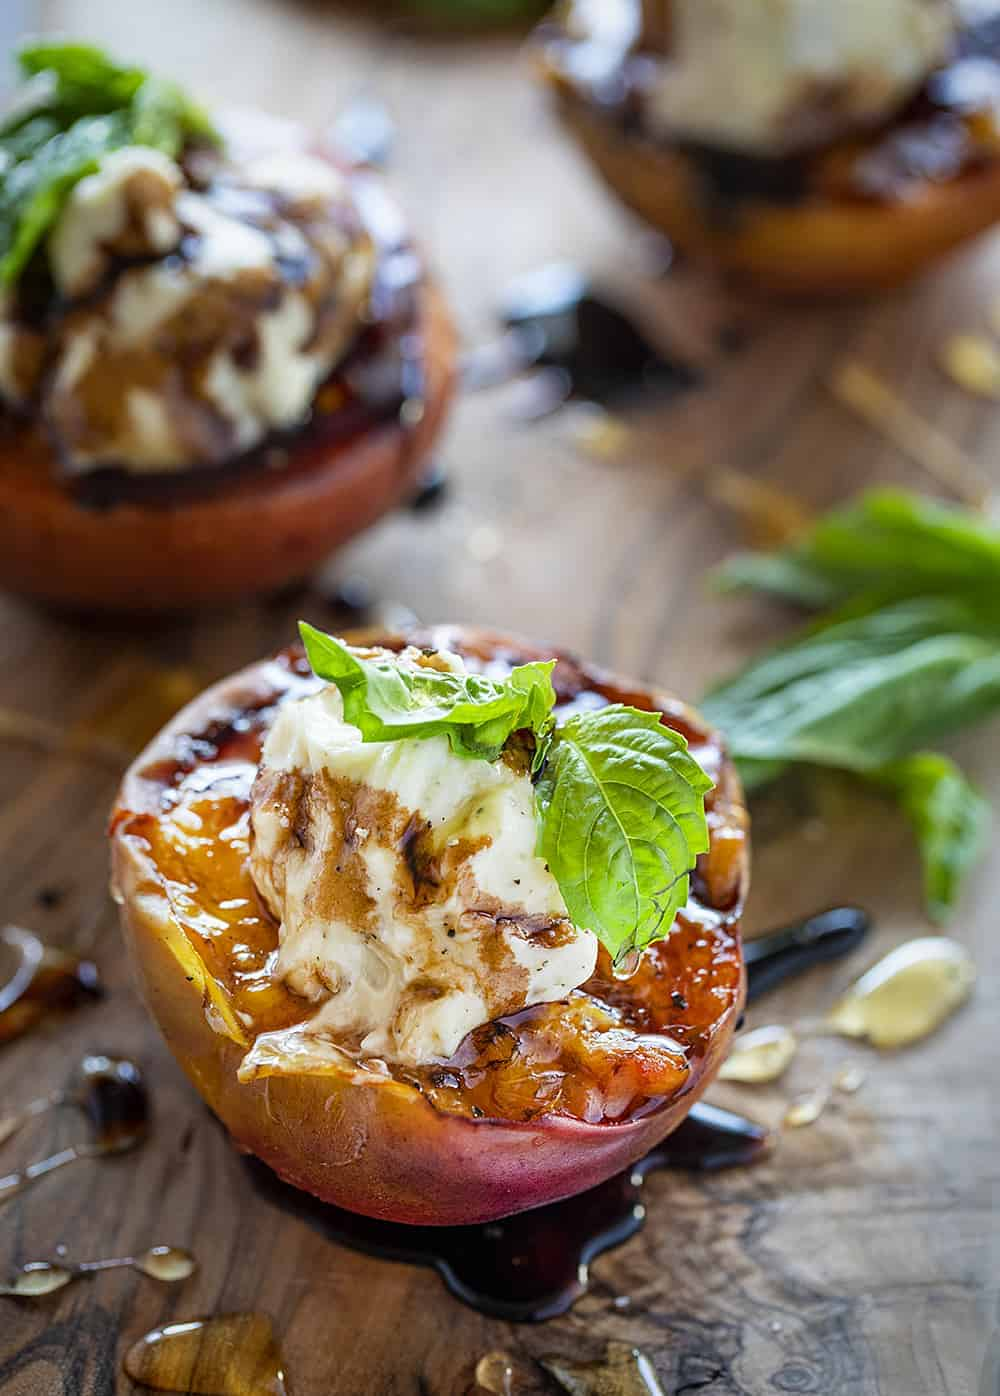 Grilled Peaches with Mascarpone and Balsamic Reduction topped with a basil leaf